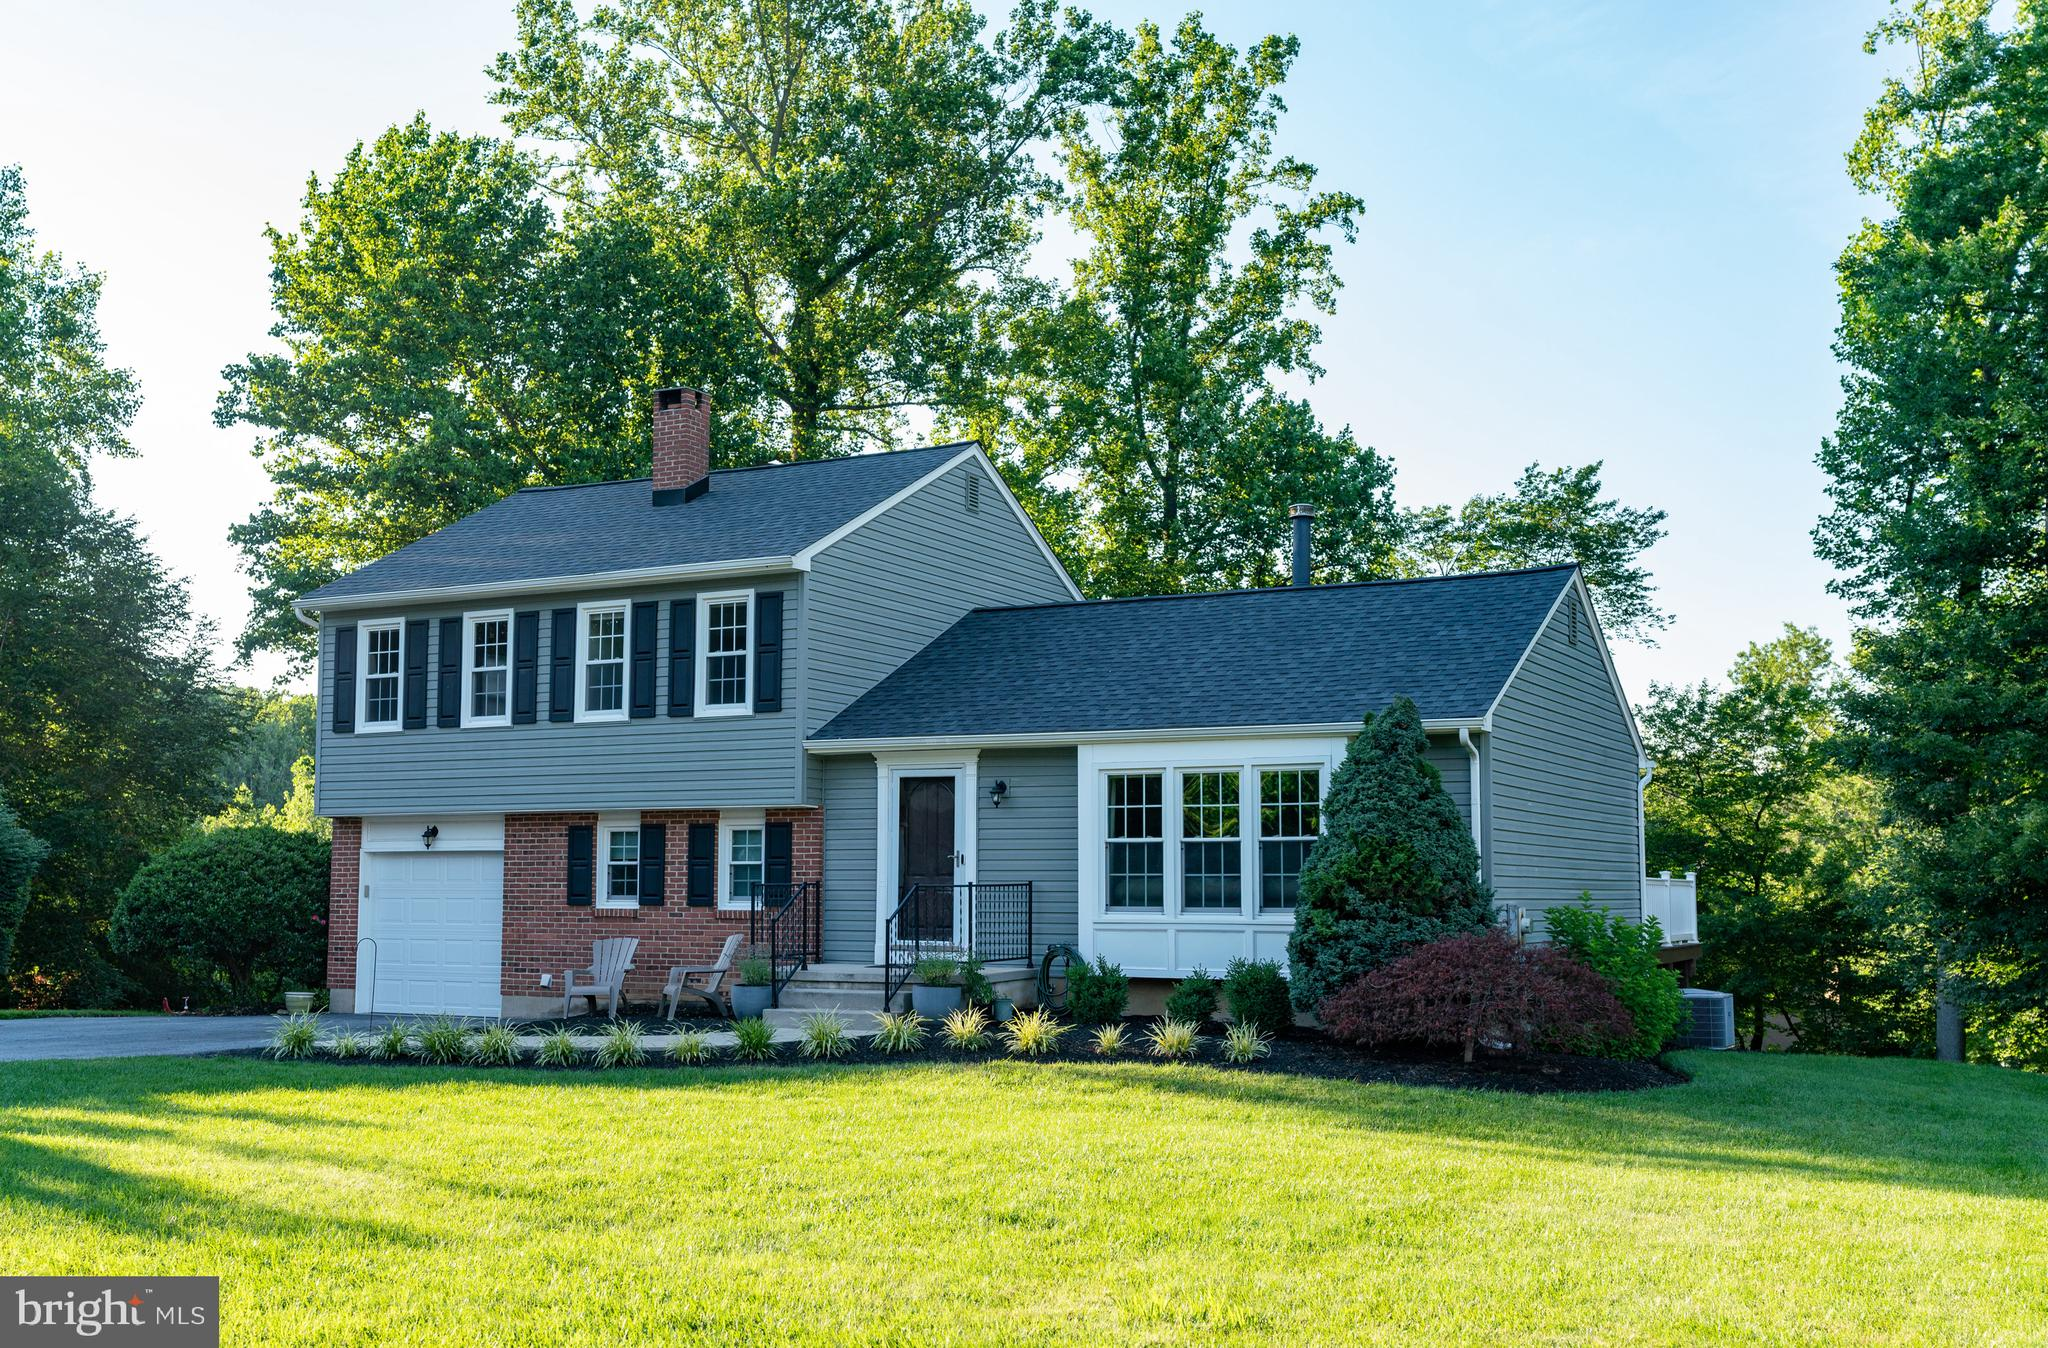 Showing start noon on Saturday 7/11. Quality, Convenience and Comfort describe this 3 bedroom 1.5 ba